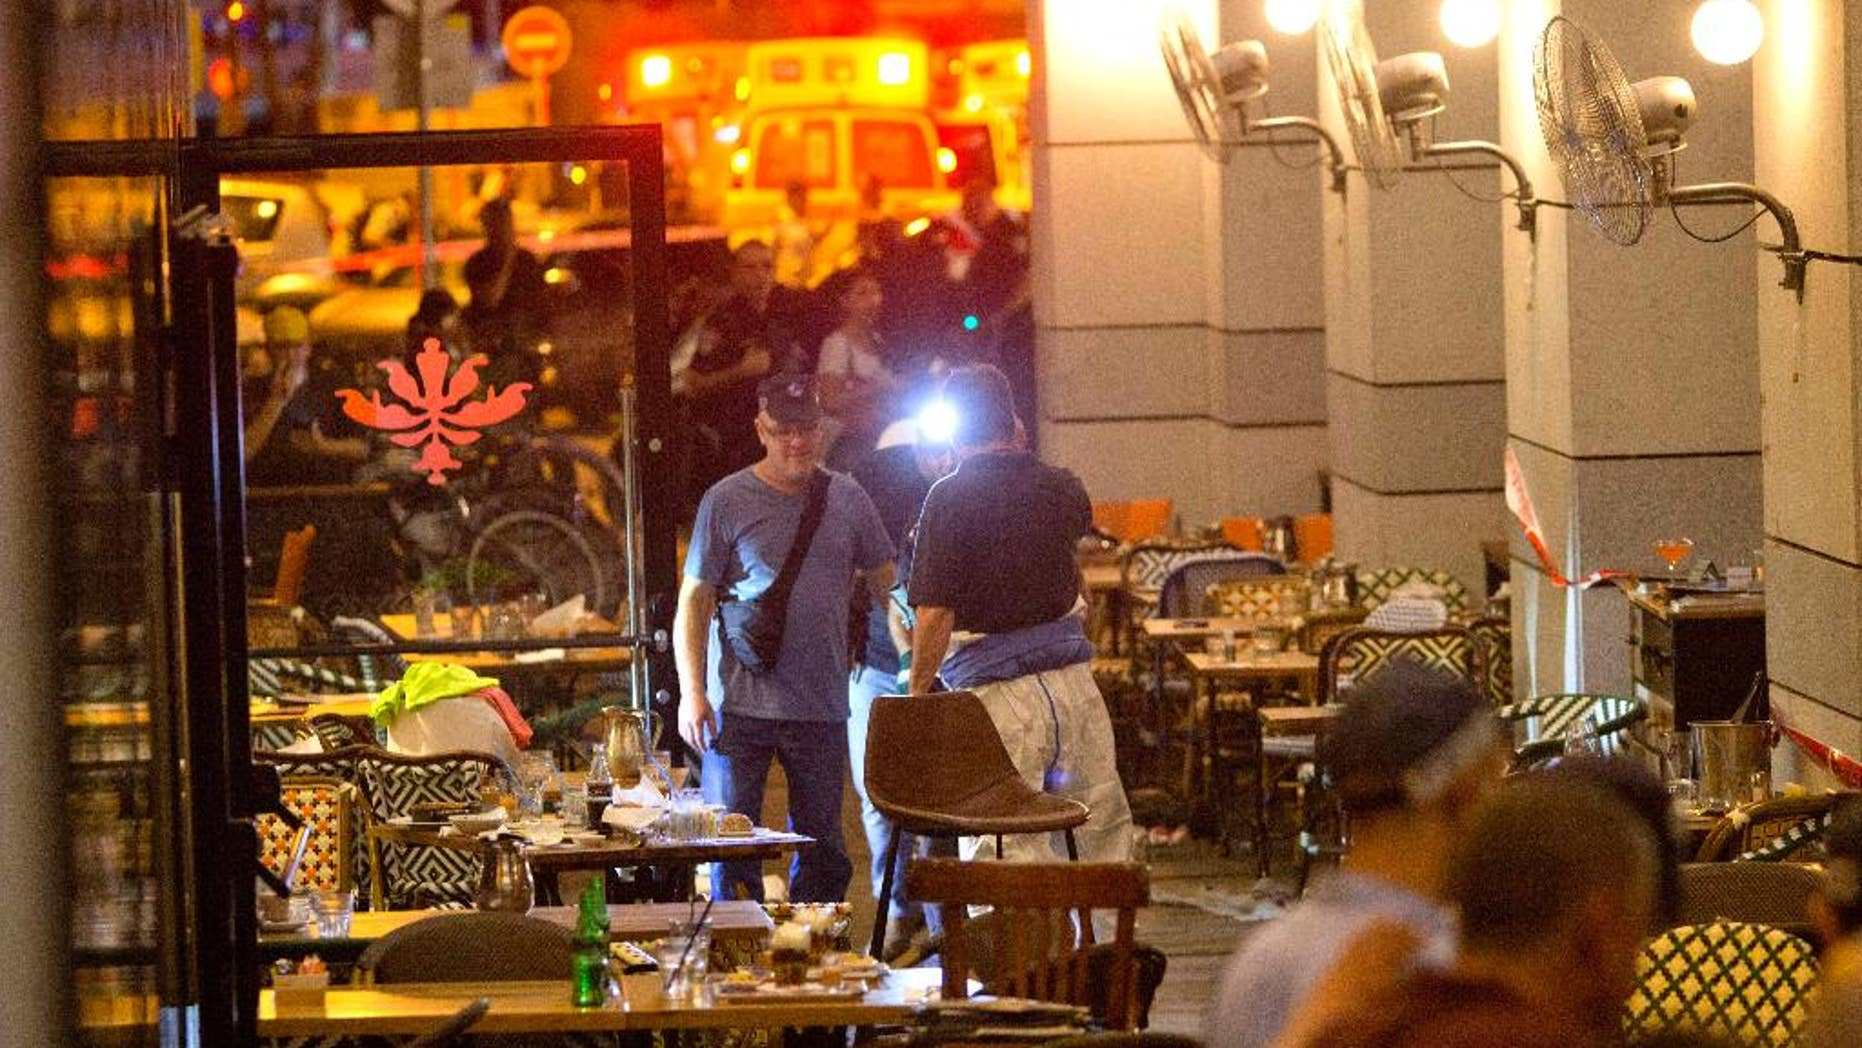 Israeli police officers examine the scene of a shooting attack in Tel Aviv, Israel, Wednesday, June 8, 2016. Two Palestinian gunmen opened fire in central Tel Aviv Wednesday night, killing three people and wounding at least five others, Israel police said. (AP Photo/Sebastian Scheiner)